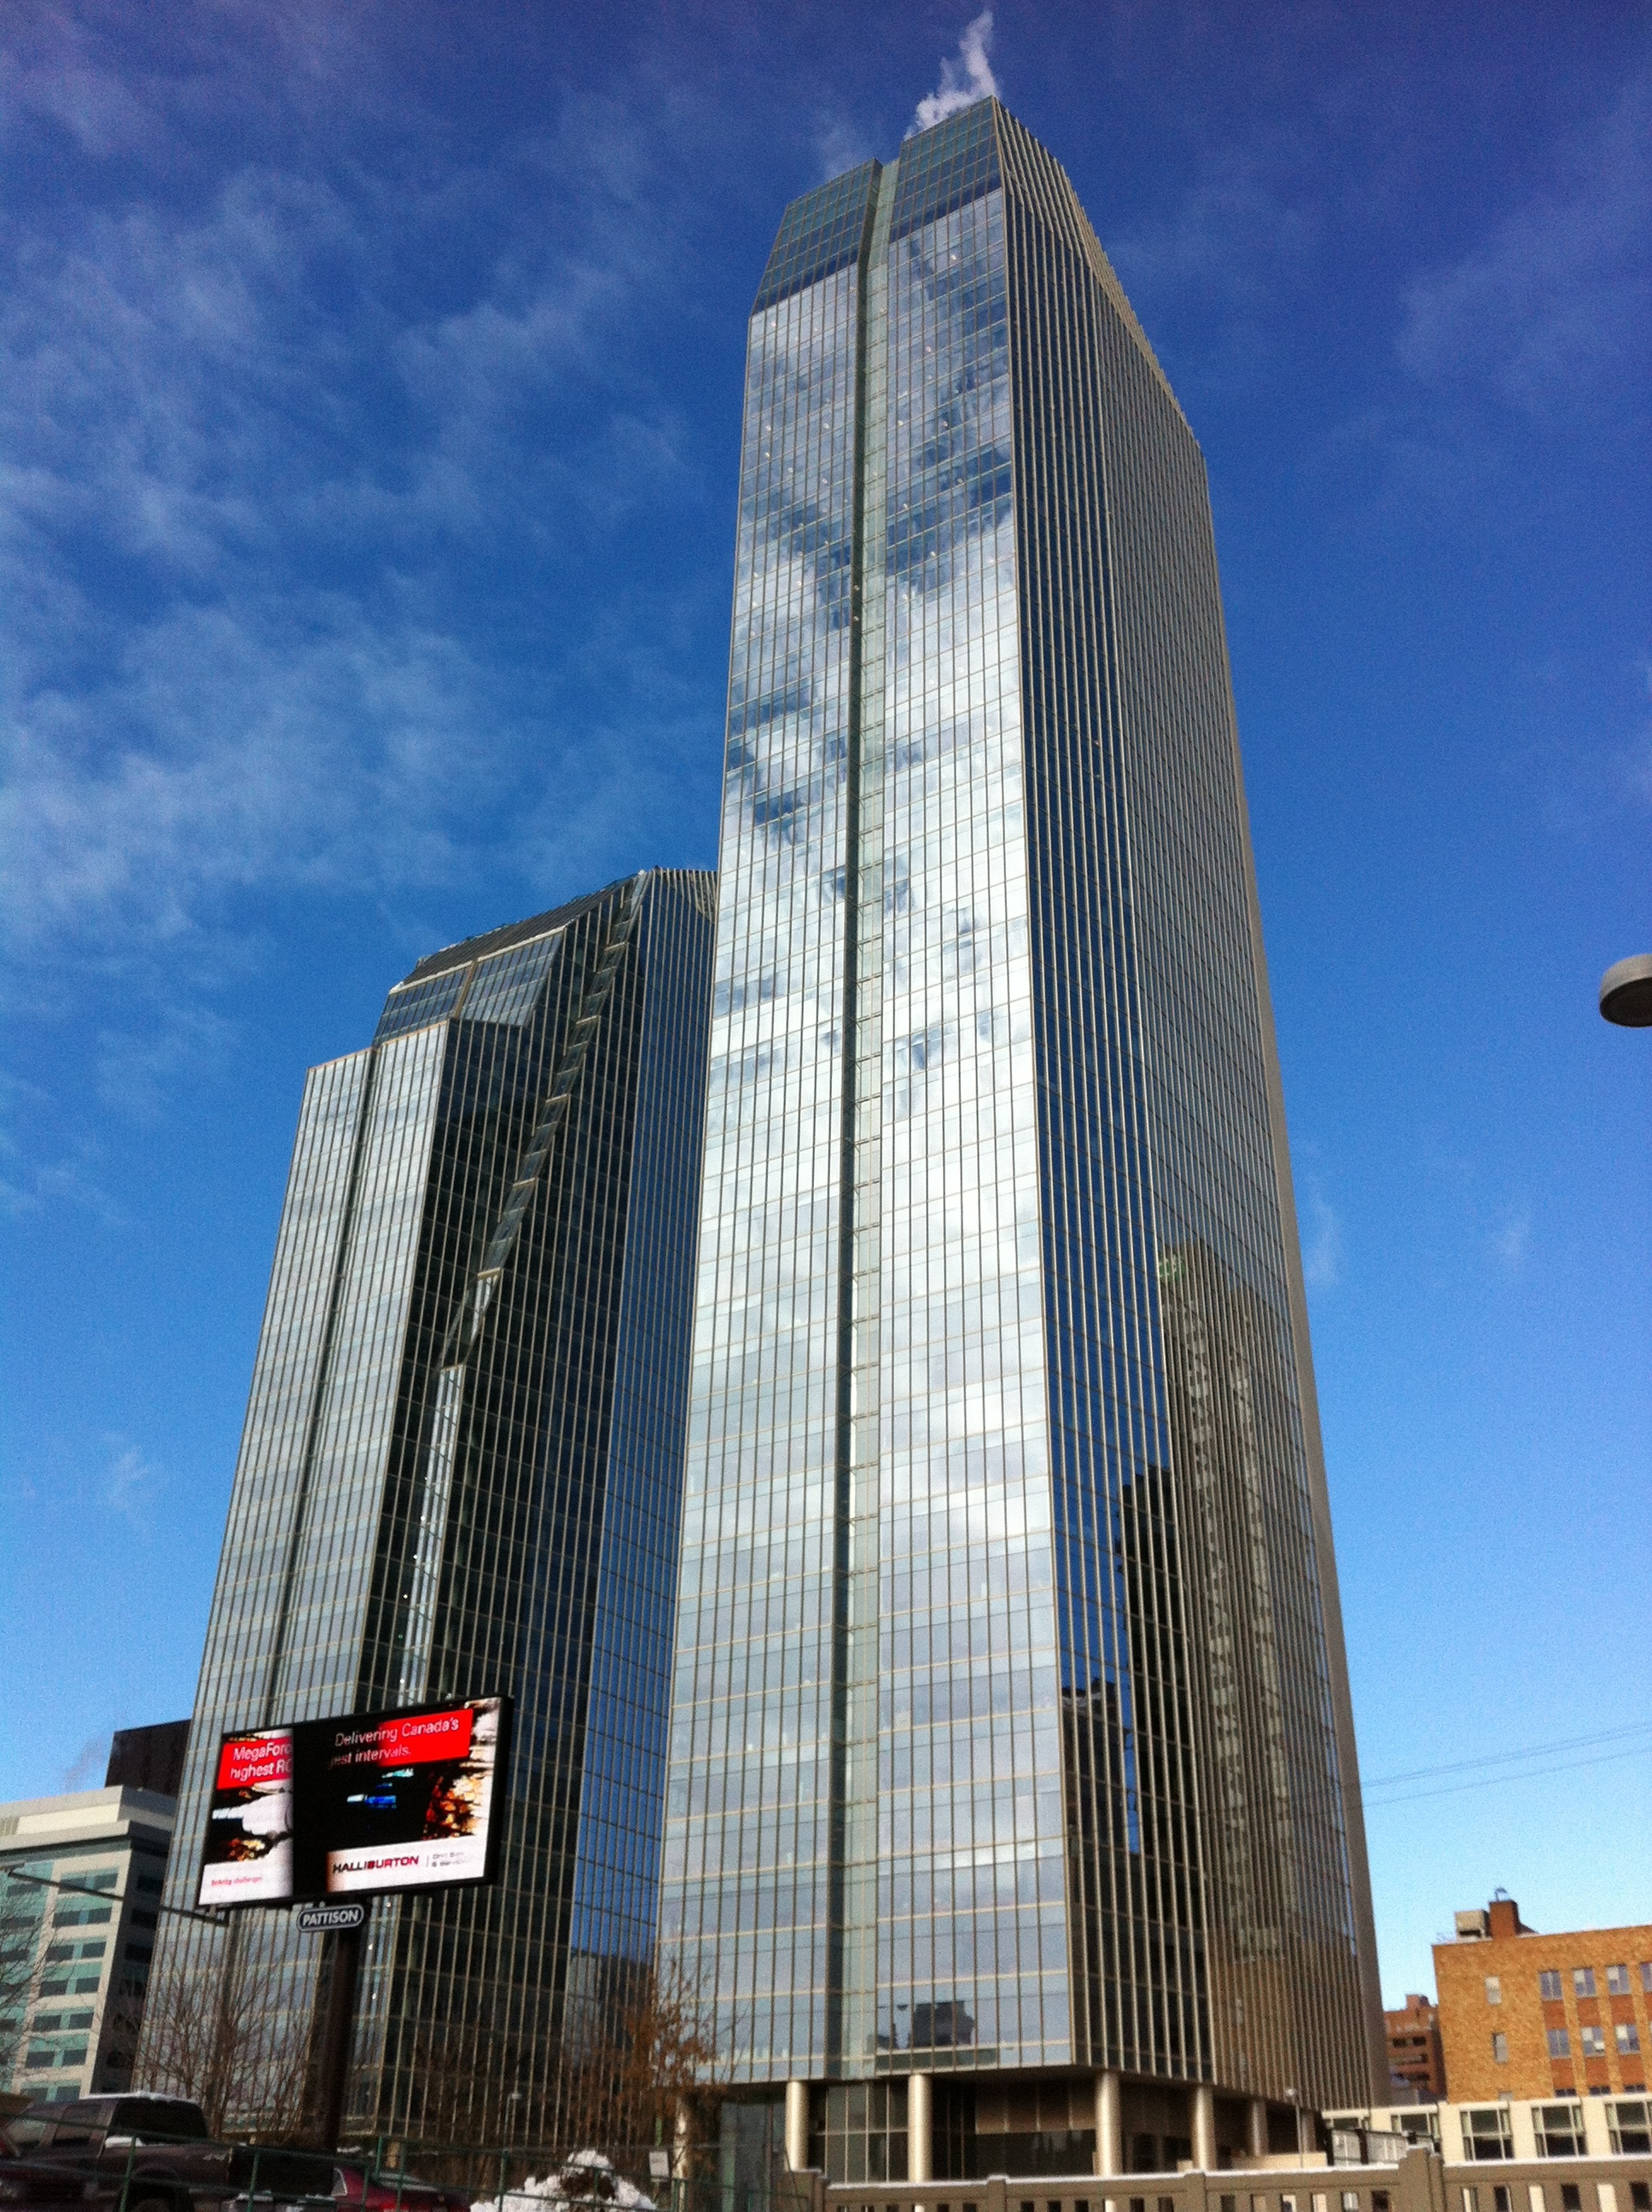 Eight Avenue Place is just one of dozens of office towers that dominate Calgary's downtown sense of place as a major corporate headquarters centre.